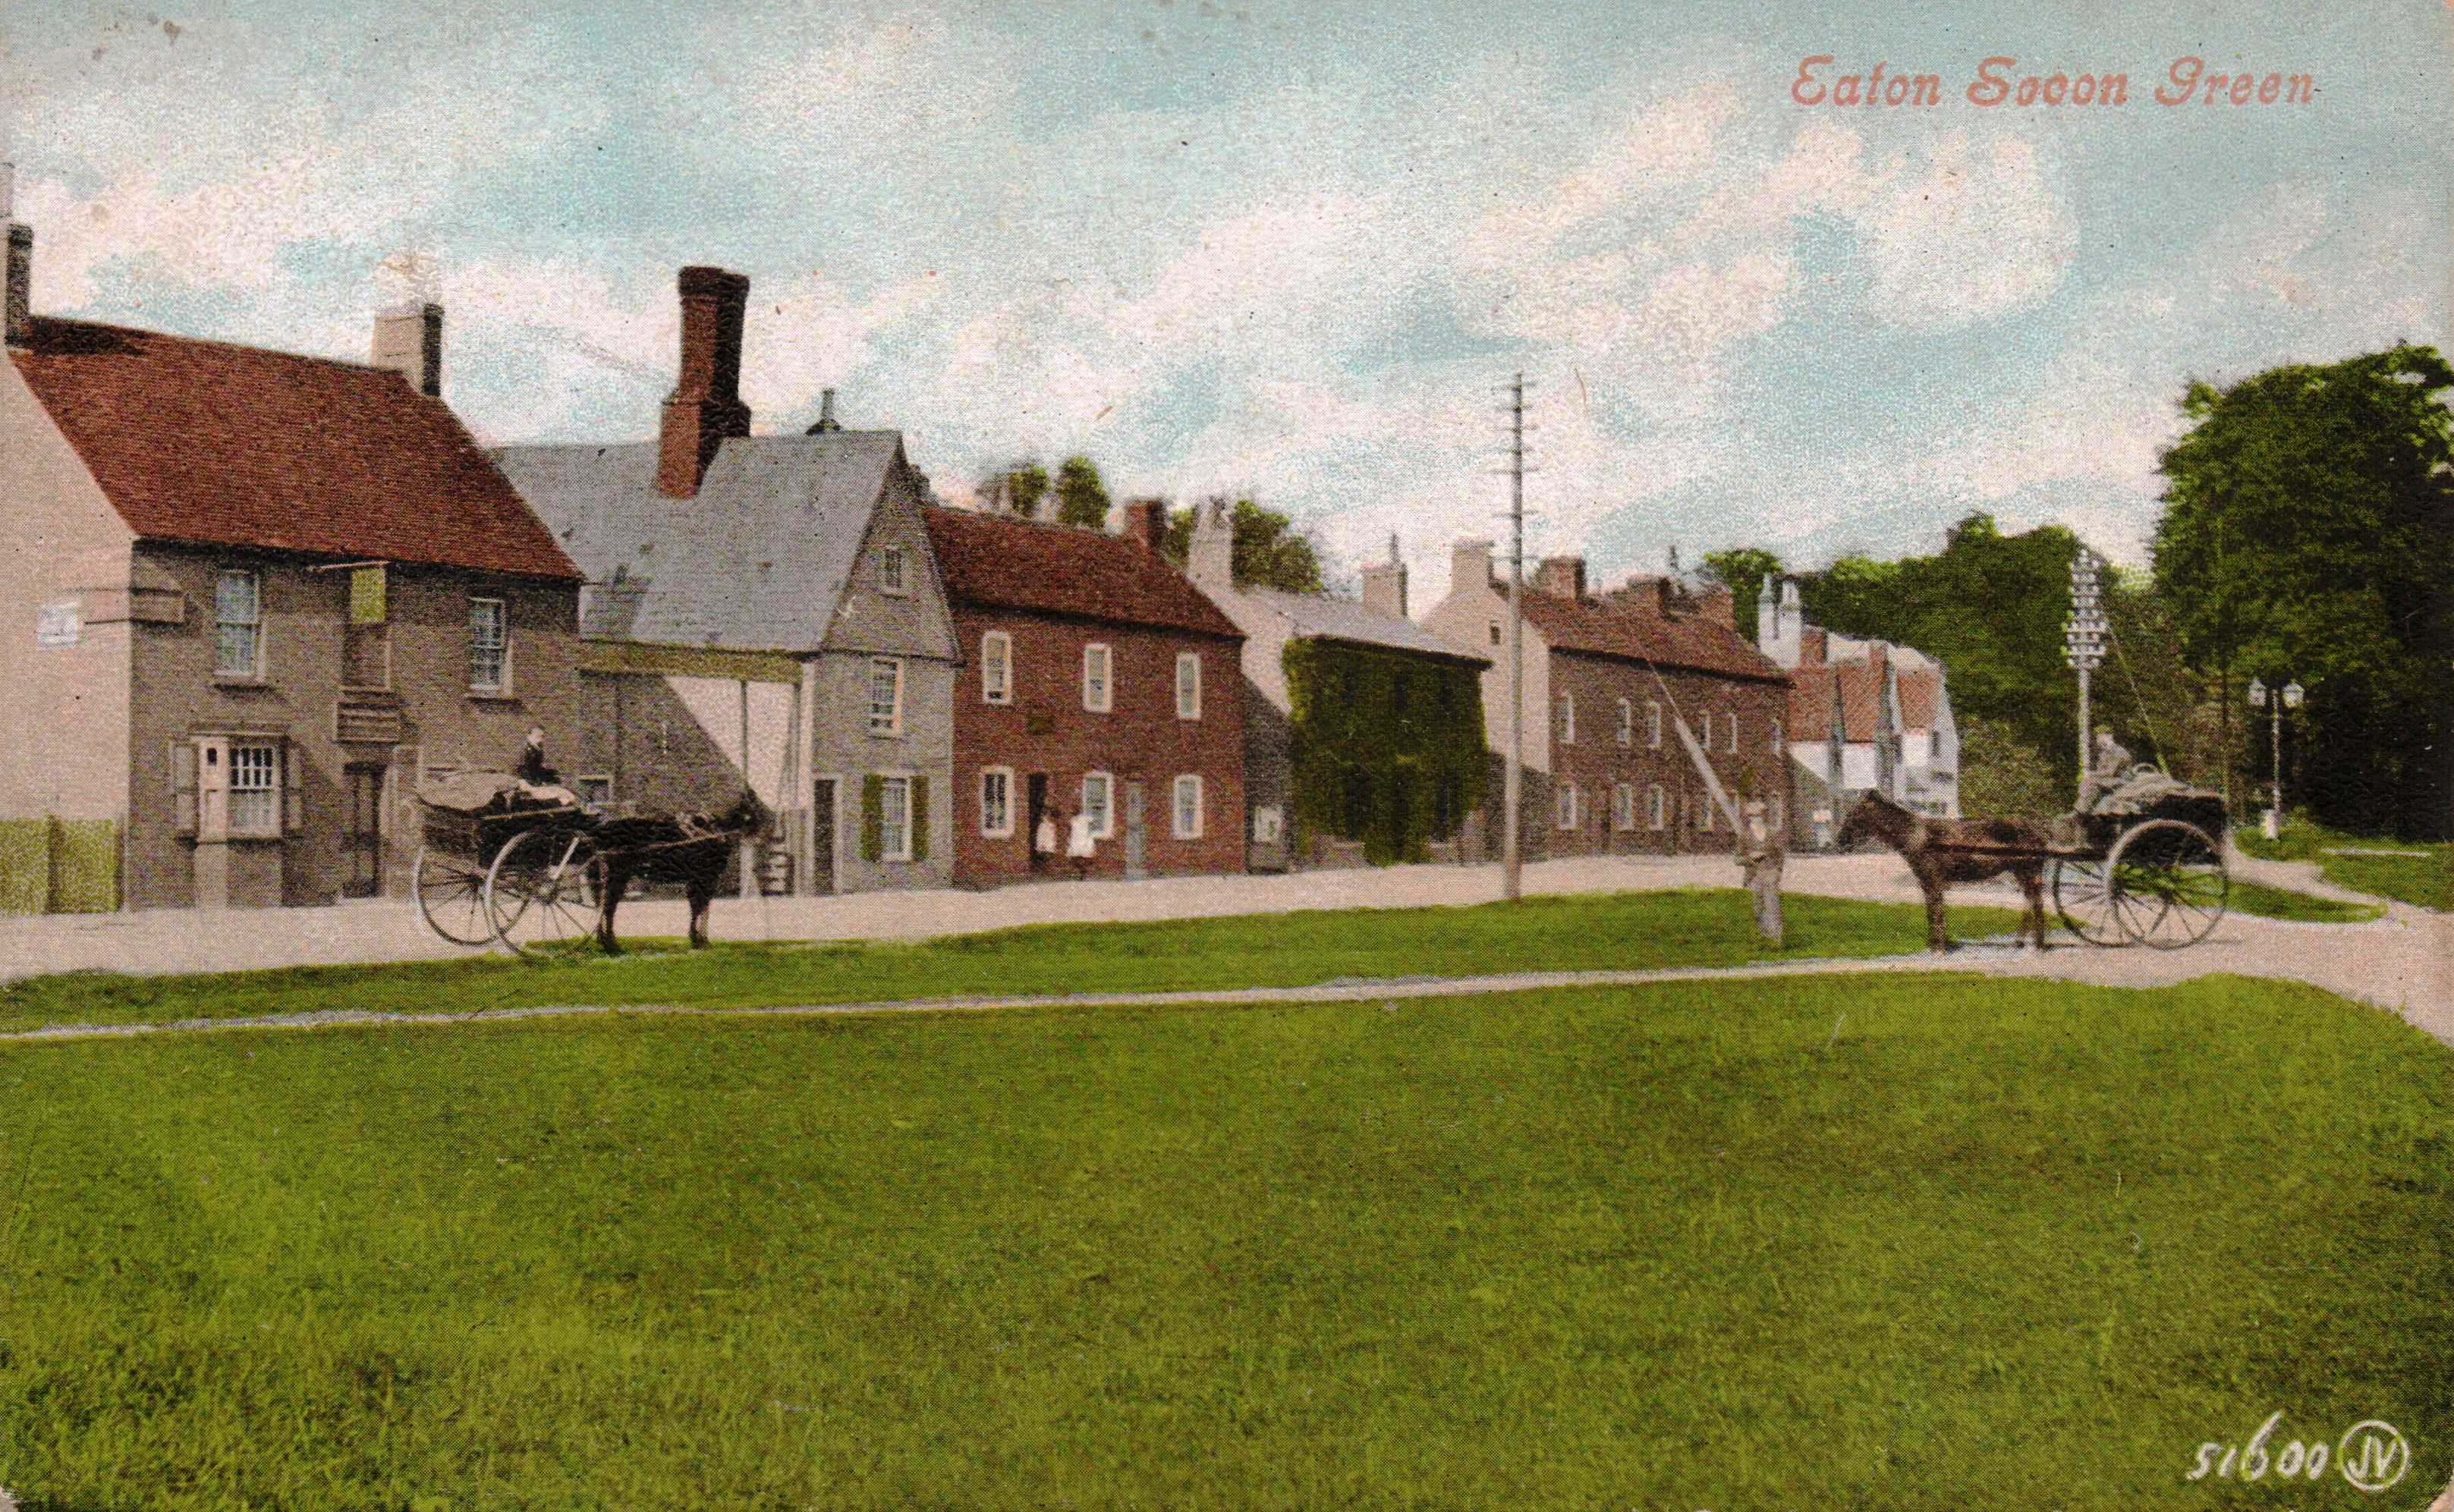 The Publications of the Bedfordshire Historical Record Society, vol. 15